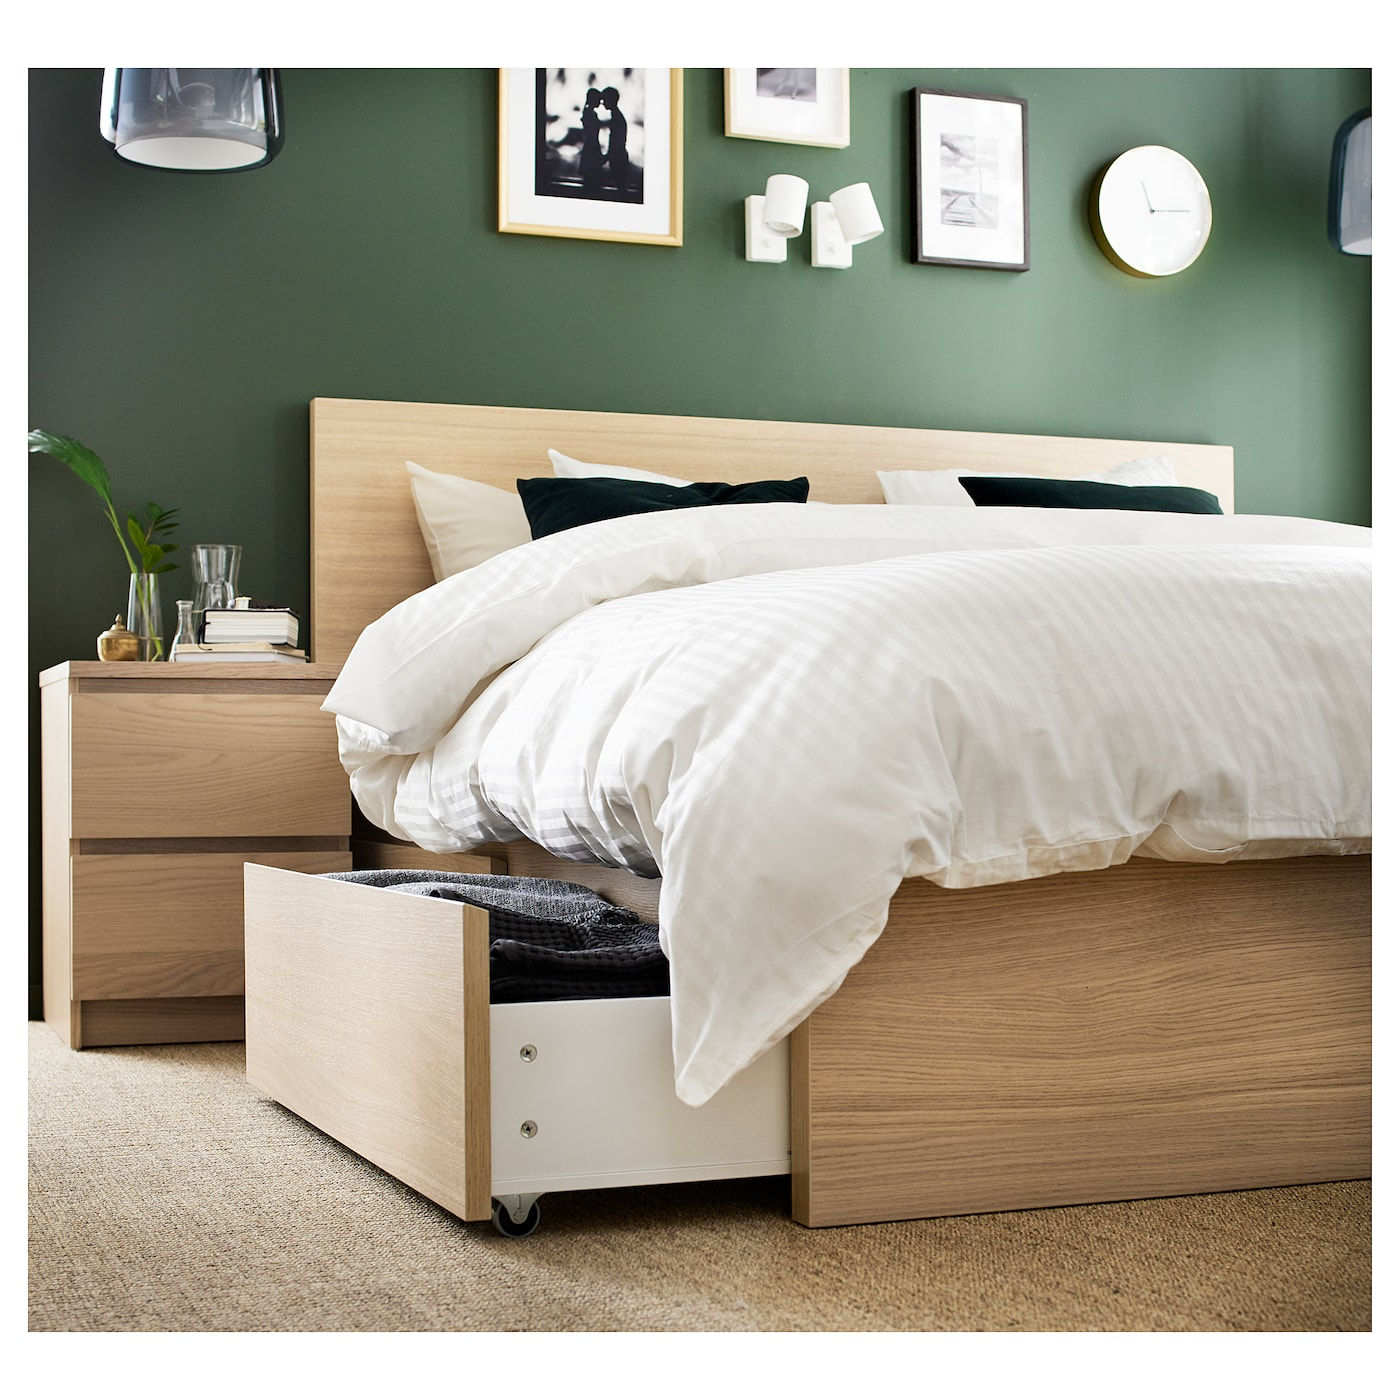 Malm Bed Storage Box For High Bed Frame White Stained Oak Veneer Ikea